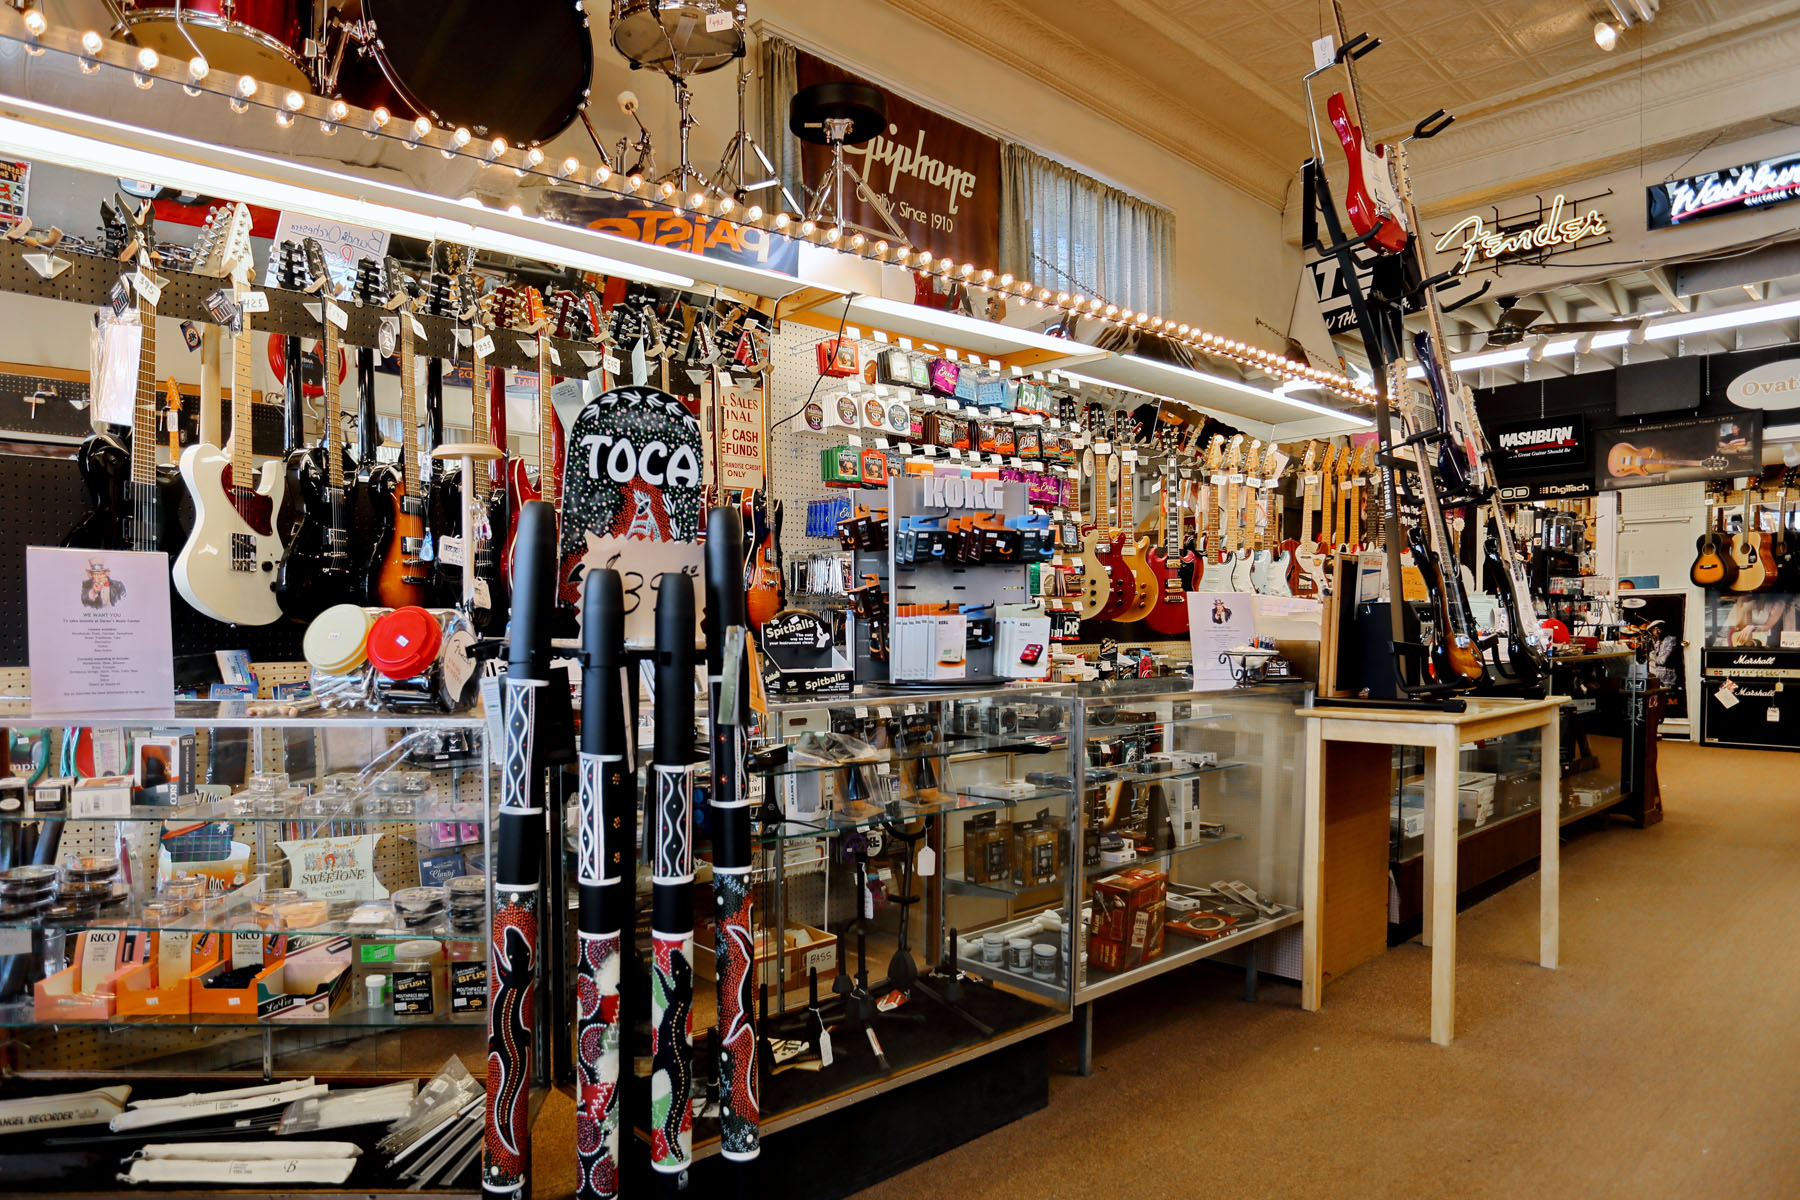 Interior image of a local music store